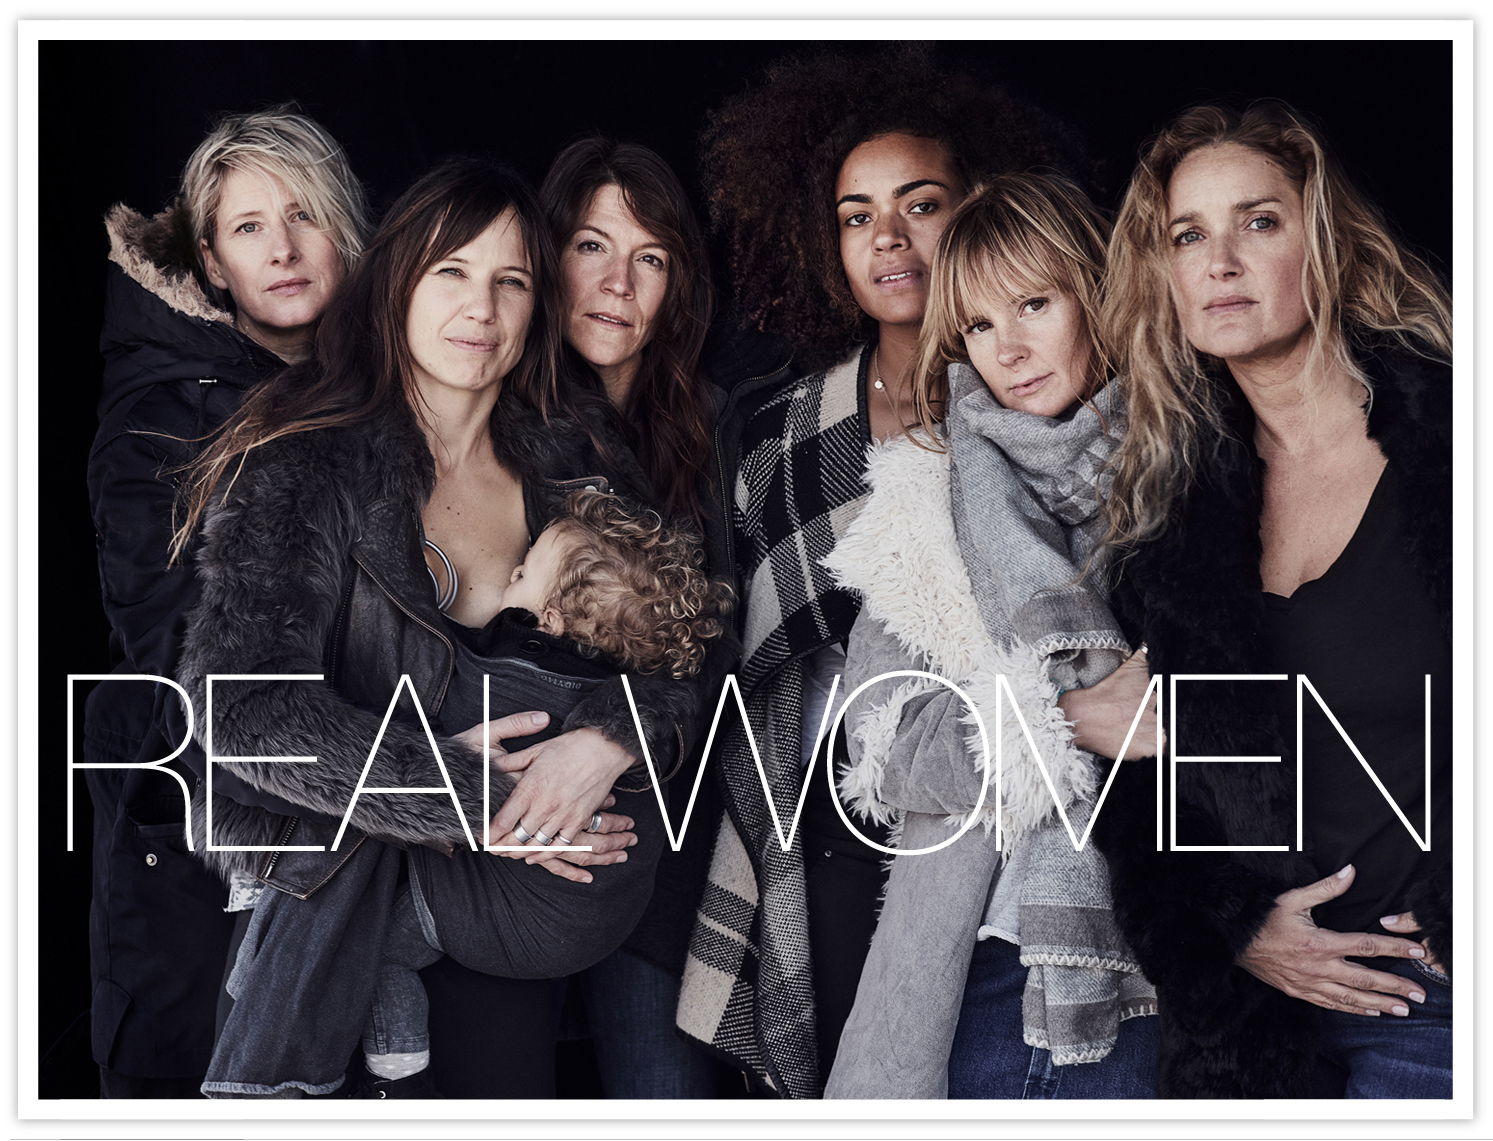 Beauty_Real_Women_Cover_Jenny_Hands_23x